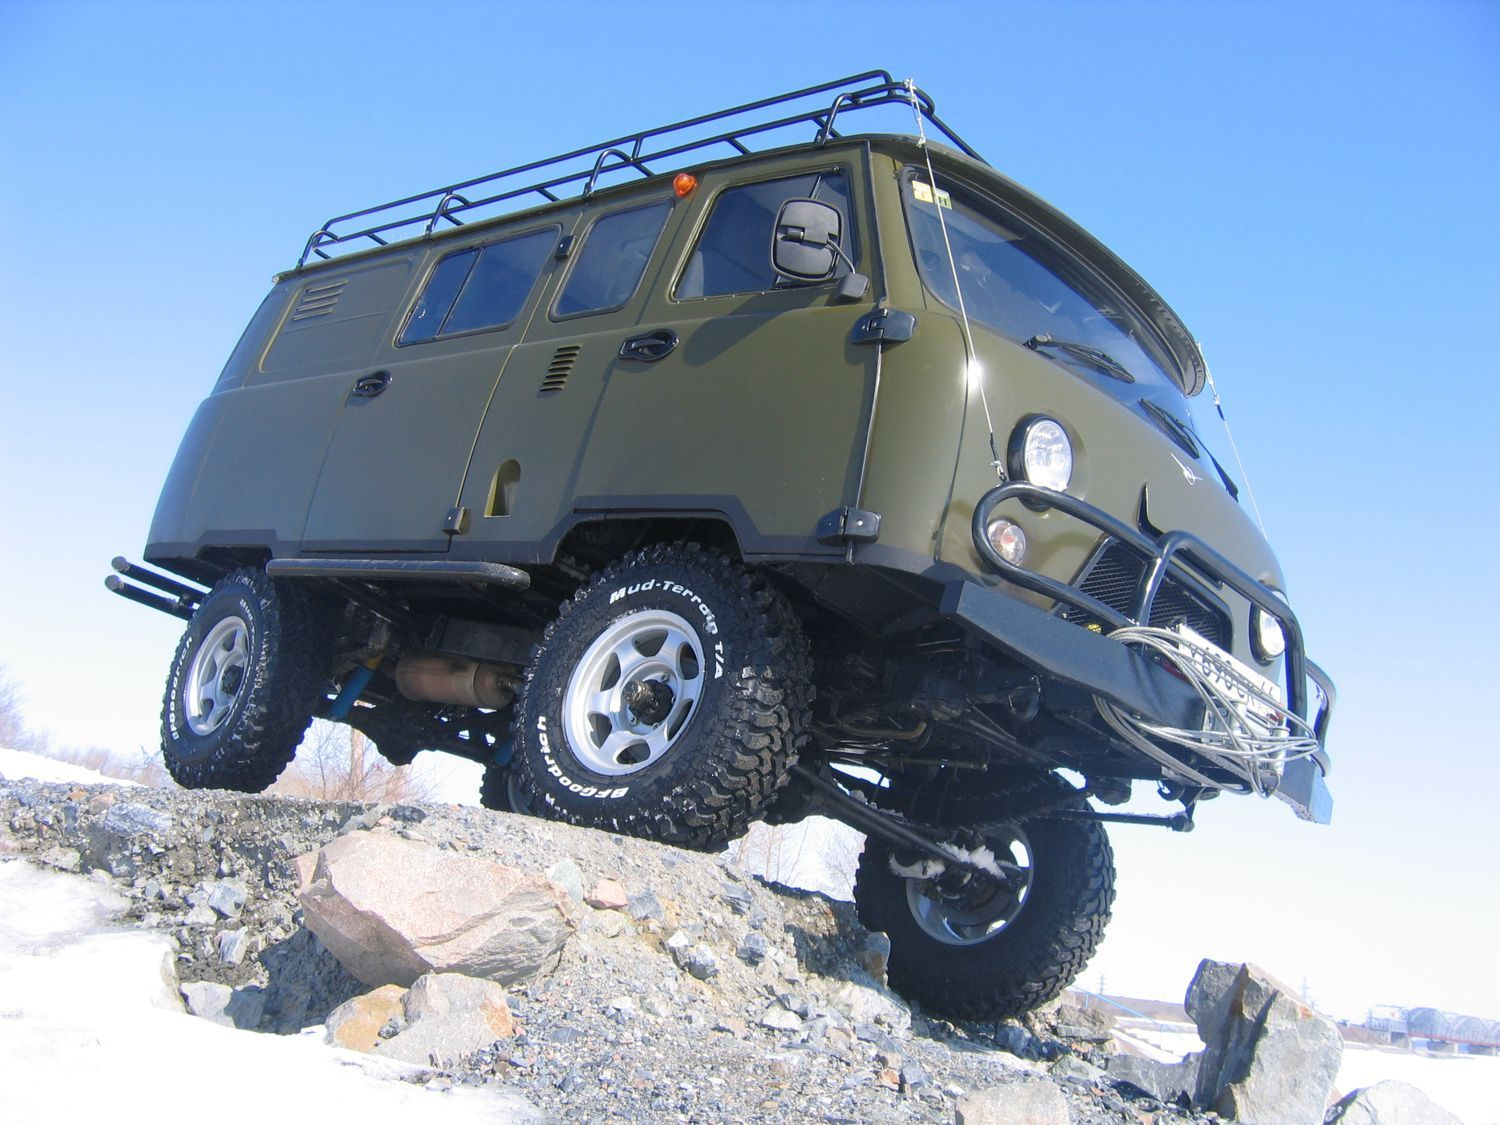 uaz 452 uaz 452 russian 4x4 van for off road camper base. Black Bedroom Furniture Sets. Home Design Ideas